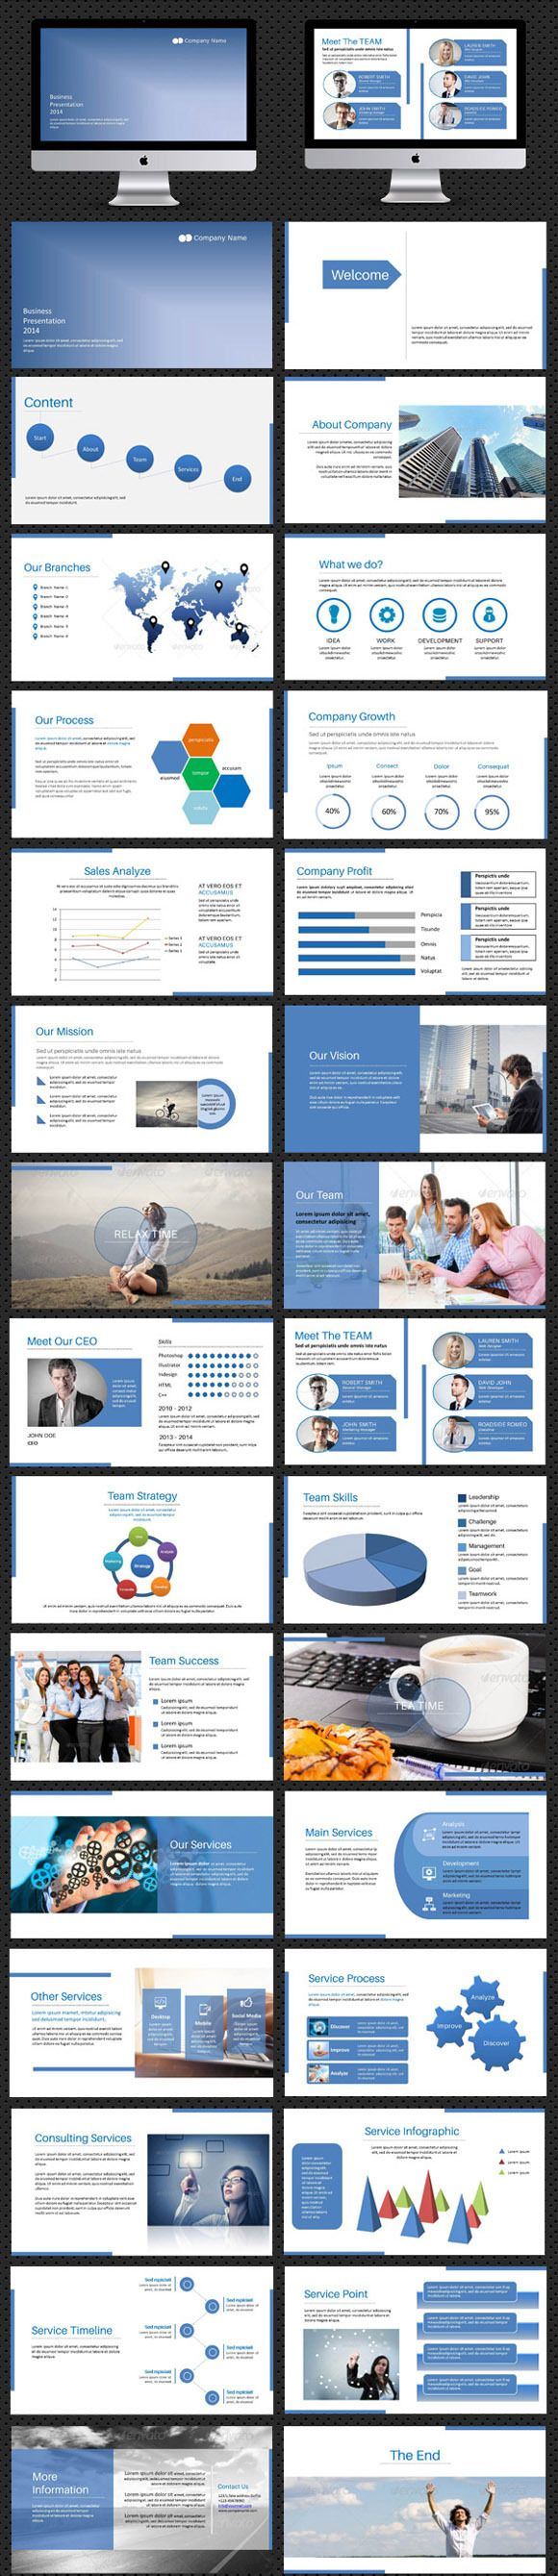 Check out PowerPoint presentation by sismic on Creative Market